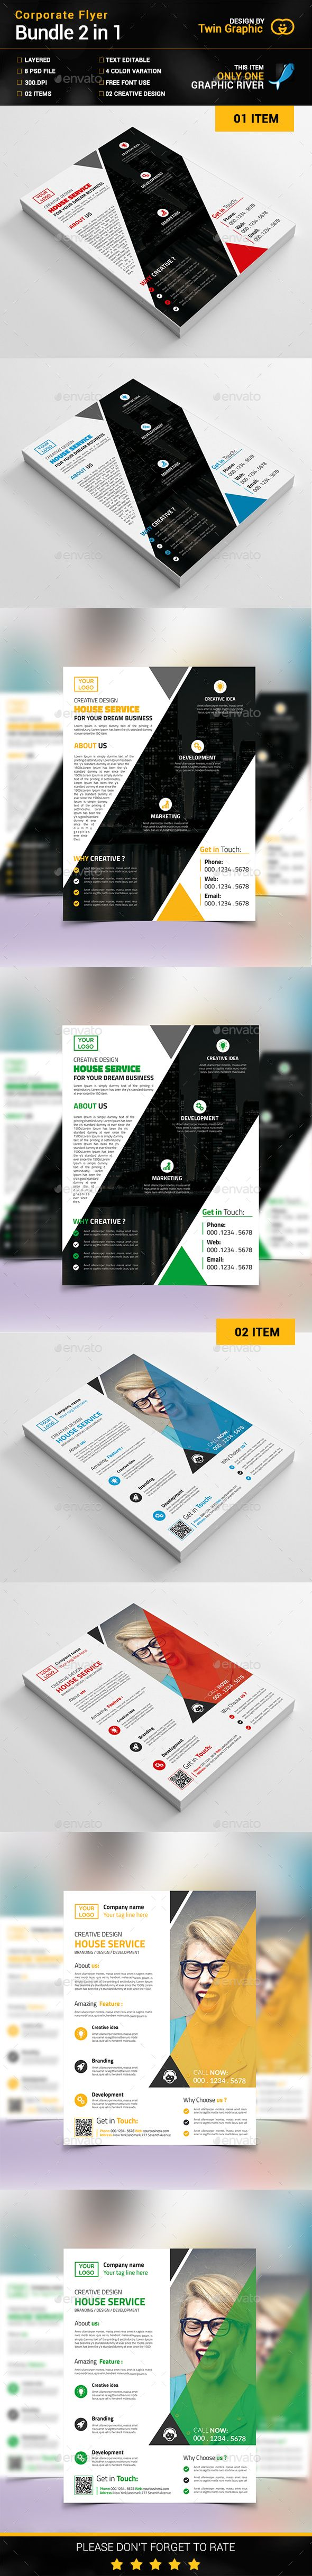 Corporate Flyer Bundle_2 in 1  . Customizable professional template for a business flyer. #FlyerTemplate #flyer #business #GraphicTemplate #design #PrintDesign #black #blue #BothSideDesign #BusinessCard #creative #designer #graphic #green #landscape #logo #magagine #ModernDesign #official #print #professional #simple #standard #web #white